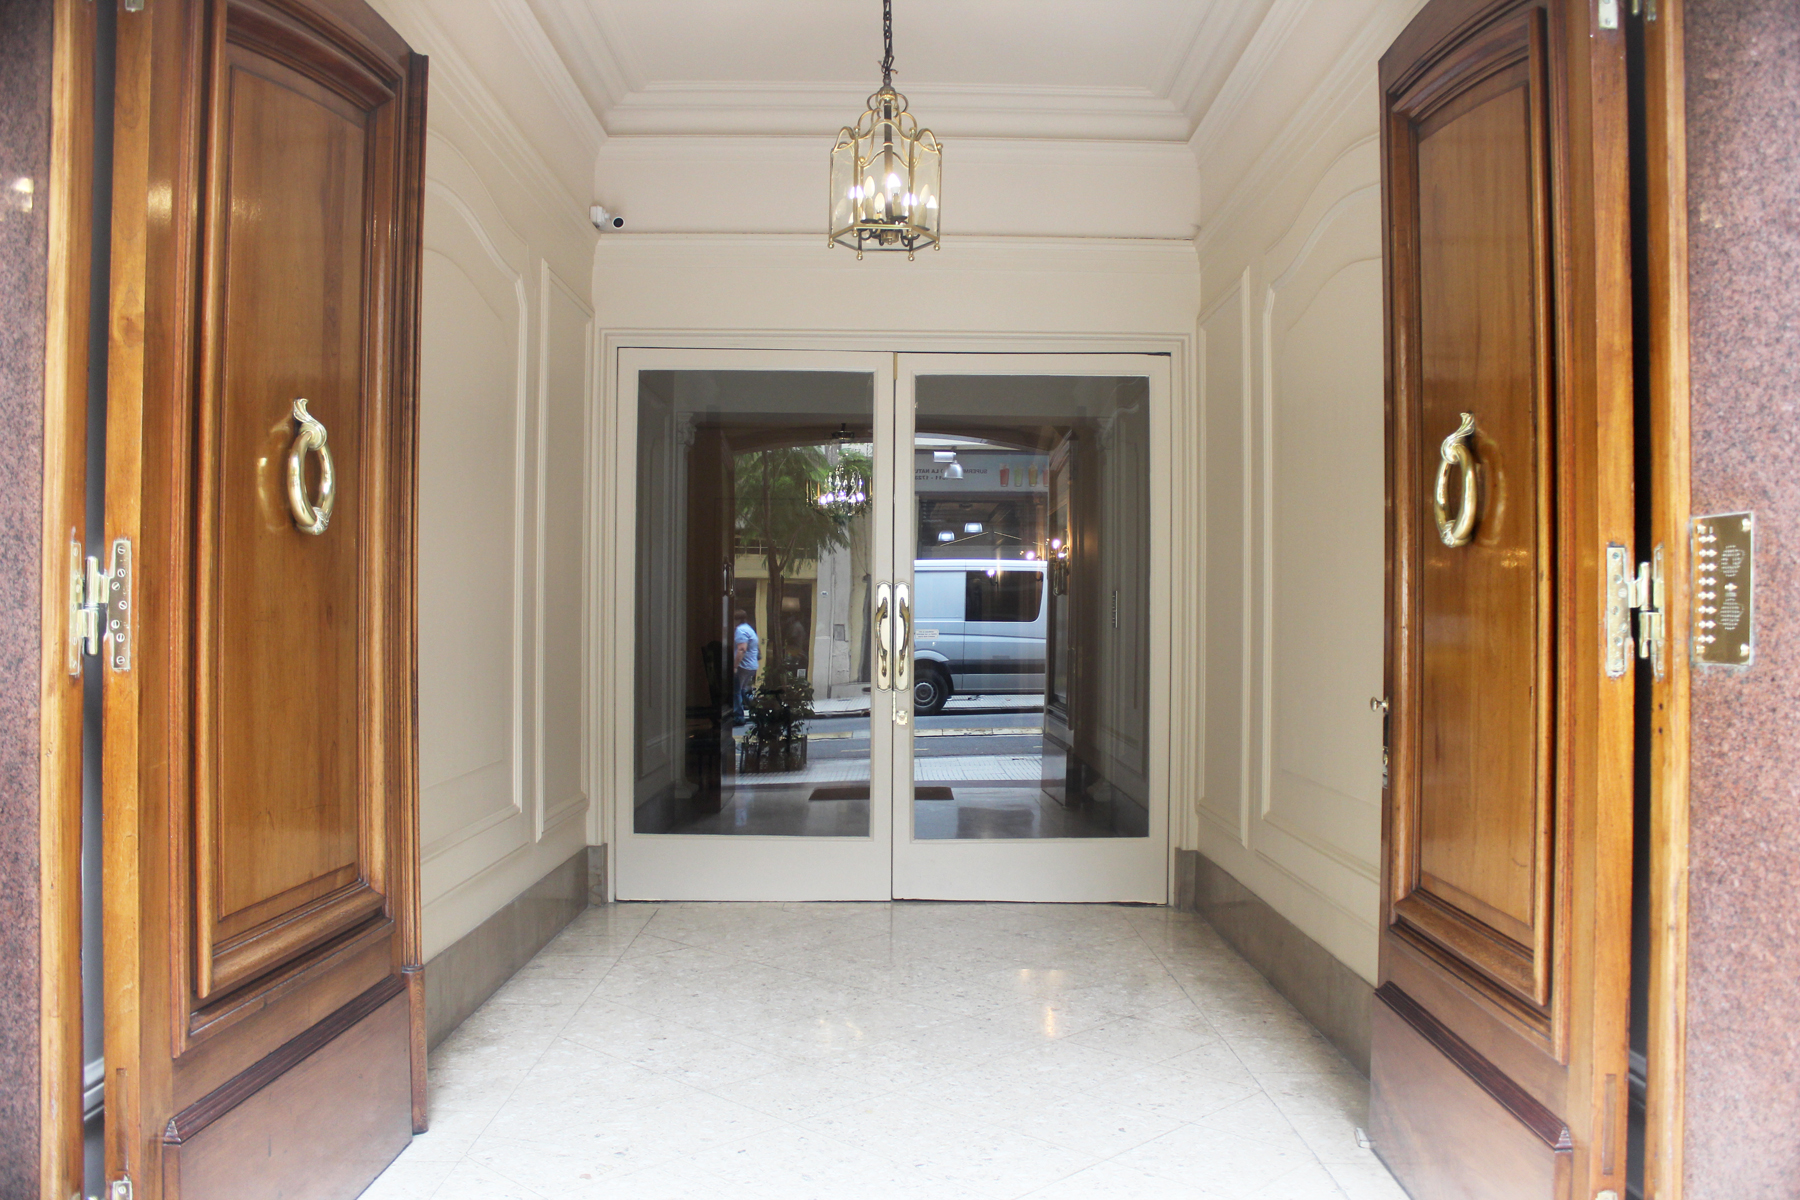 Property for Sale at French style half floor Juncal 1900 Buenos Aires, Buenos Aires C1061 Argentina